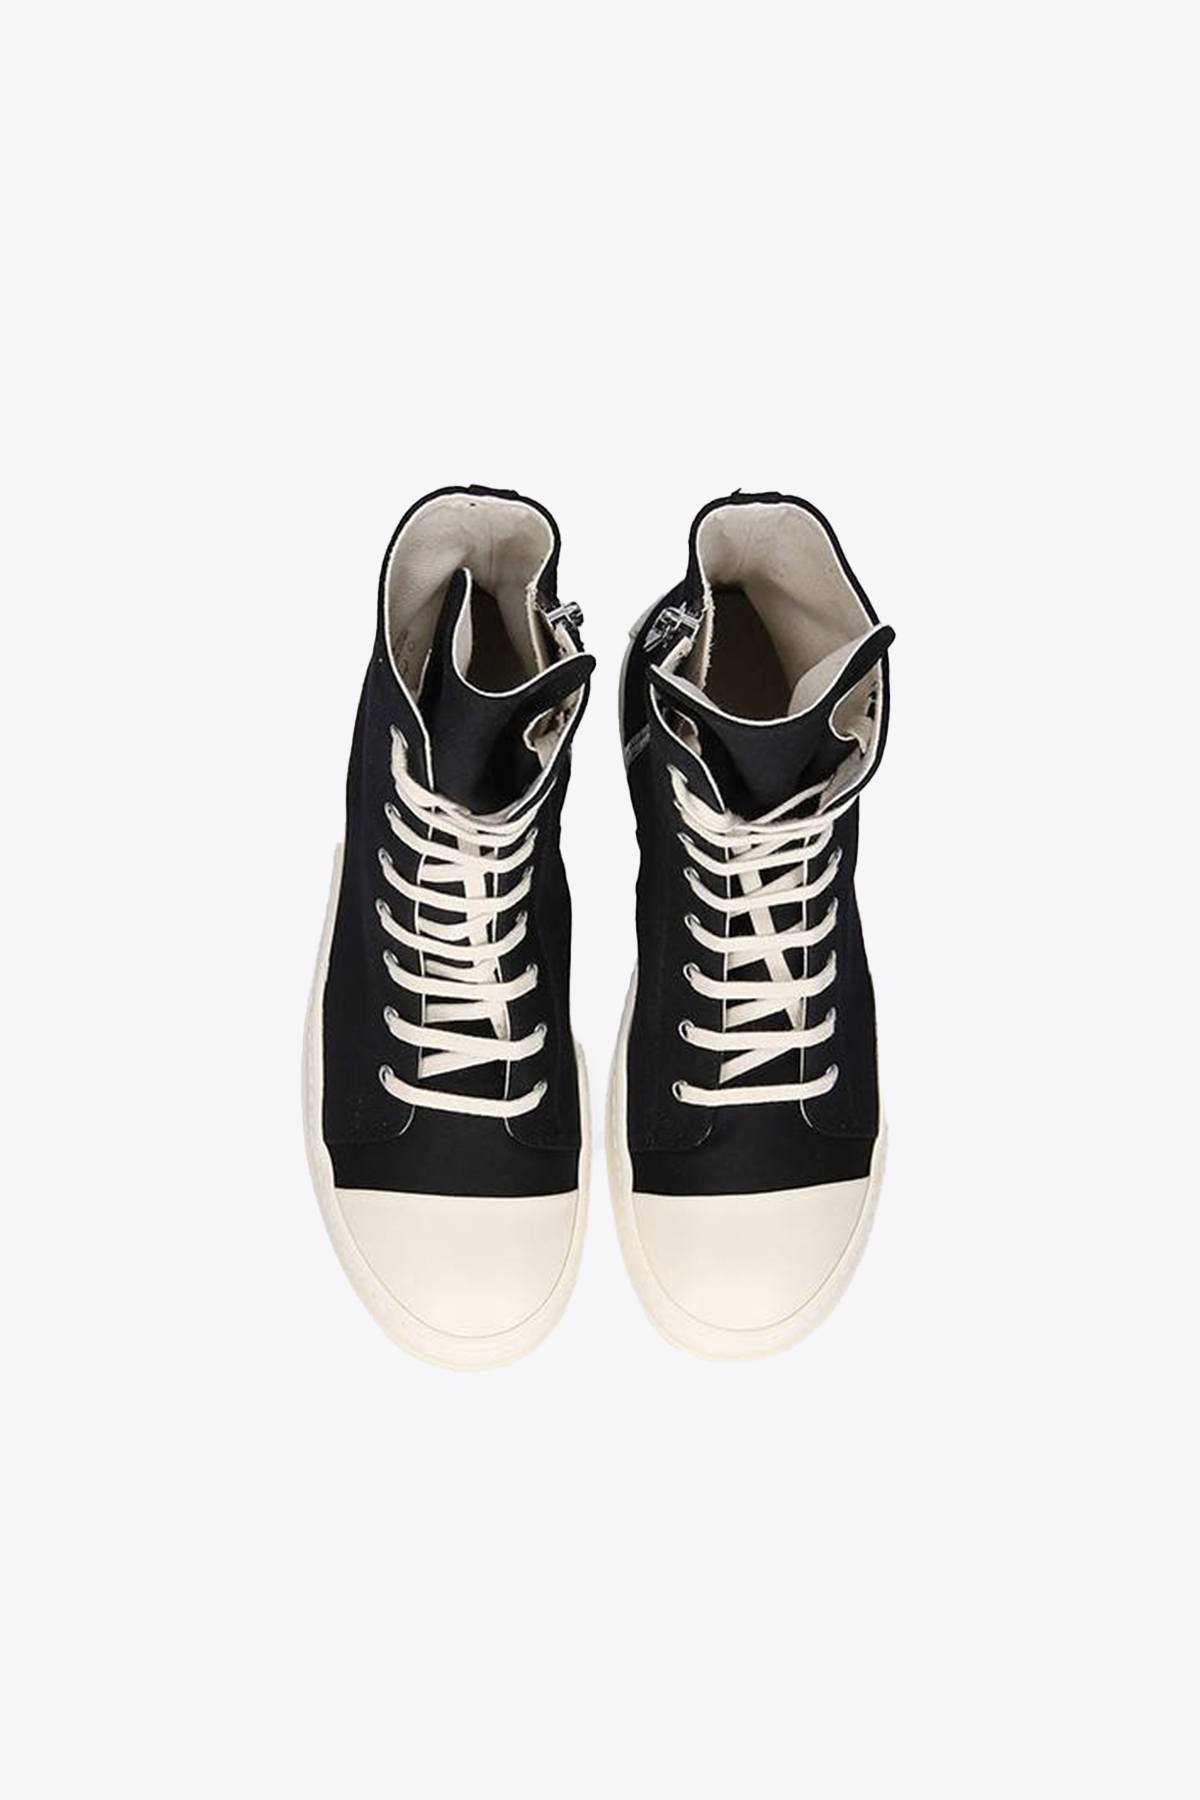 sneaker alta in cotone nera RICK OWENS-DRKSHDW | 10000039 | DS02A3800 NDKEH2 SNEAKERS911